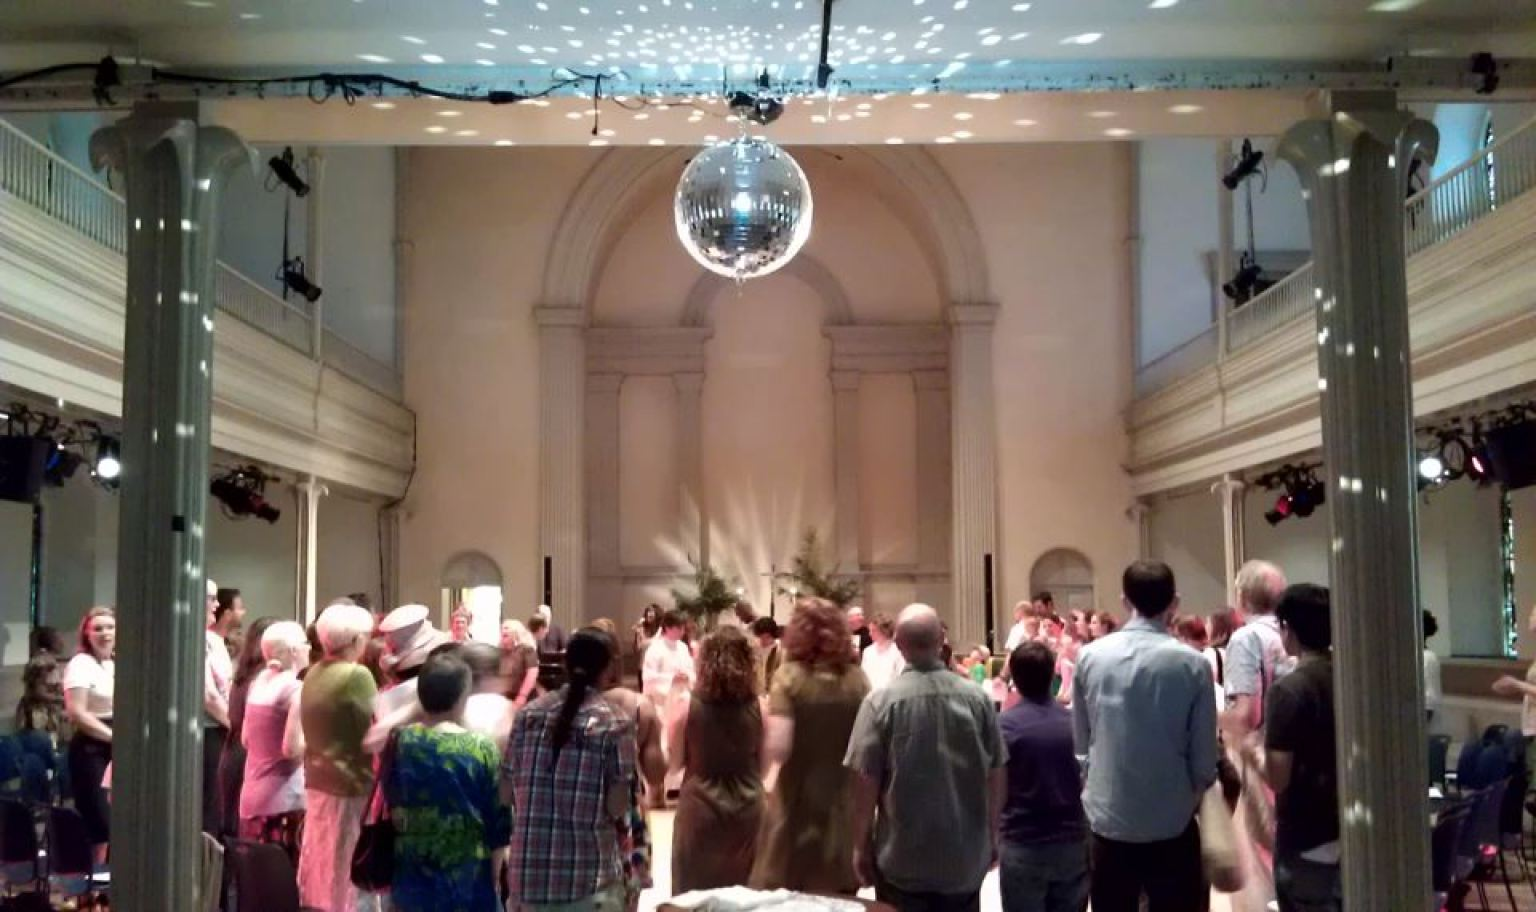 Gay Pride Disco Mass New York Citys St Marks Church In The Bowery Brings In The Divas For